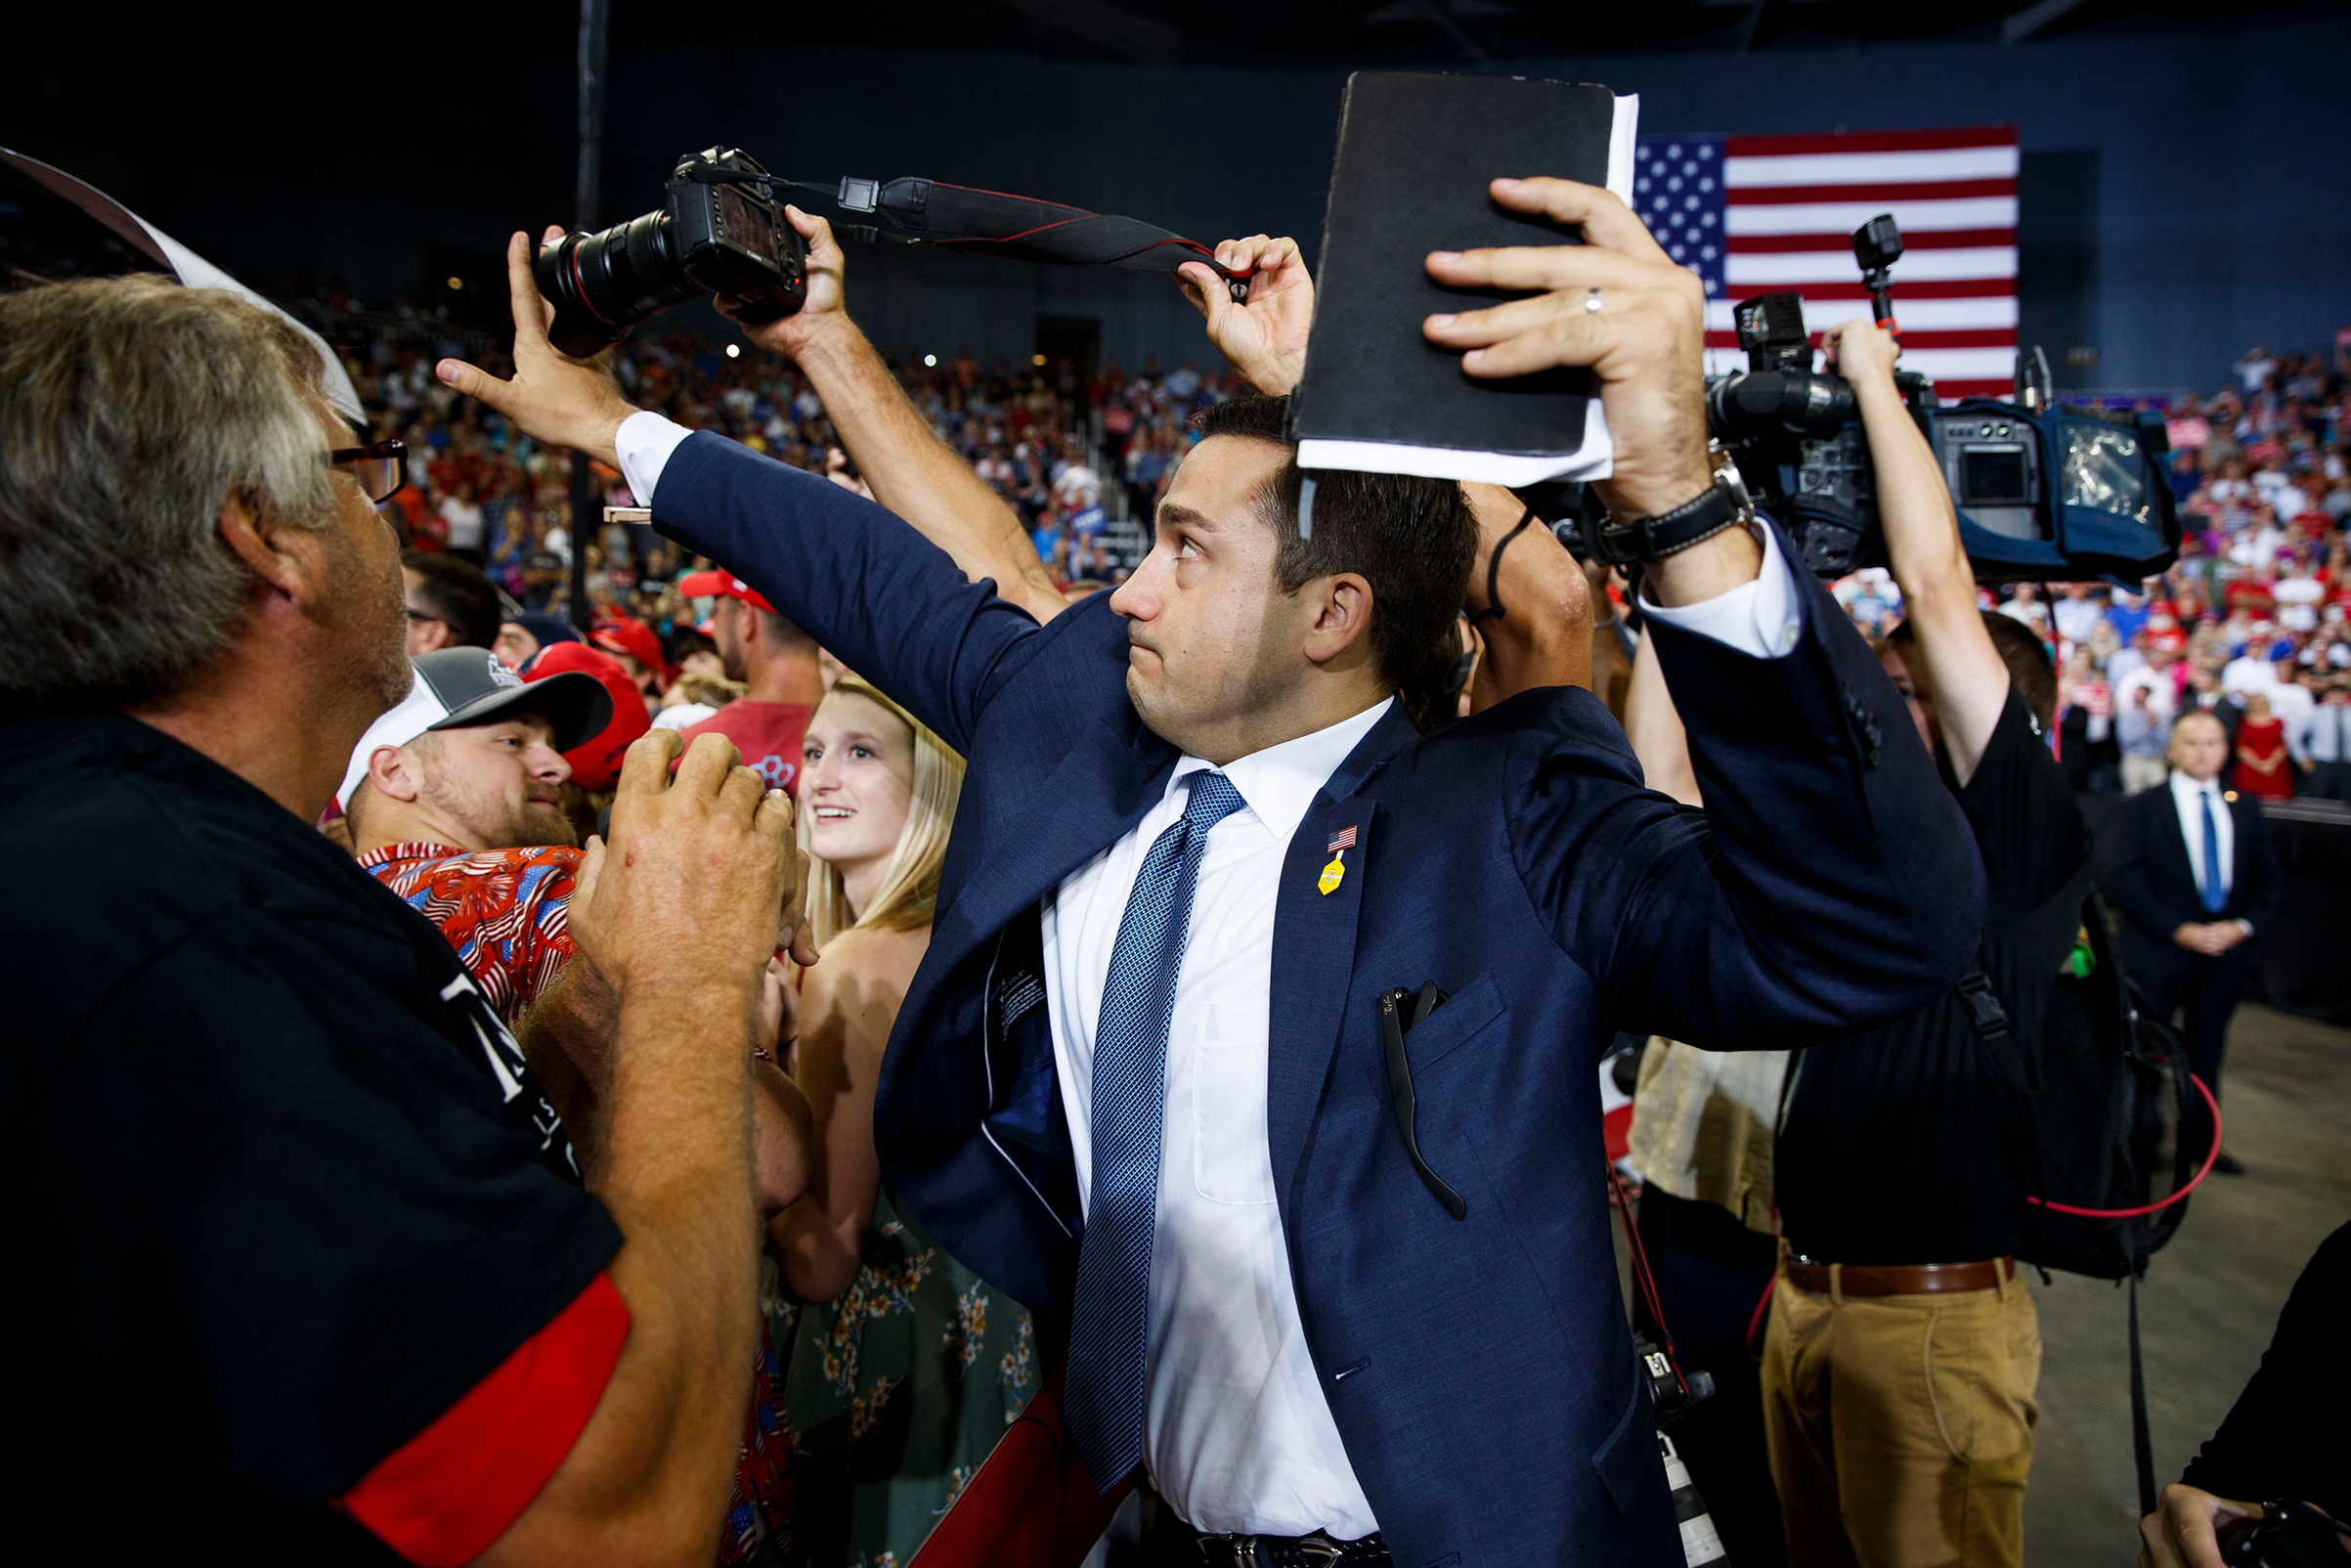 A Trump campaign volunteer blocks a camera as a photojournalist attempts to take a photo of a protester during a campaign rally at the Ford Center, in Evansville, Ind, August 30, 2018.